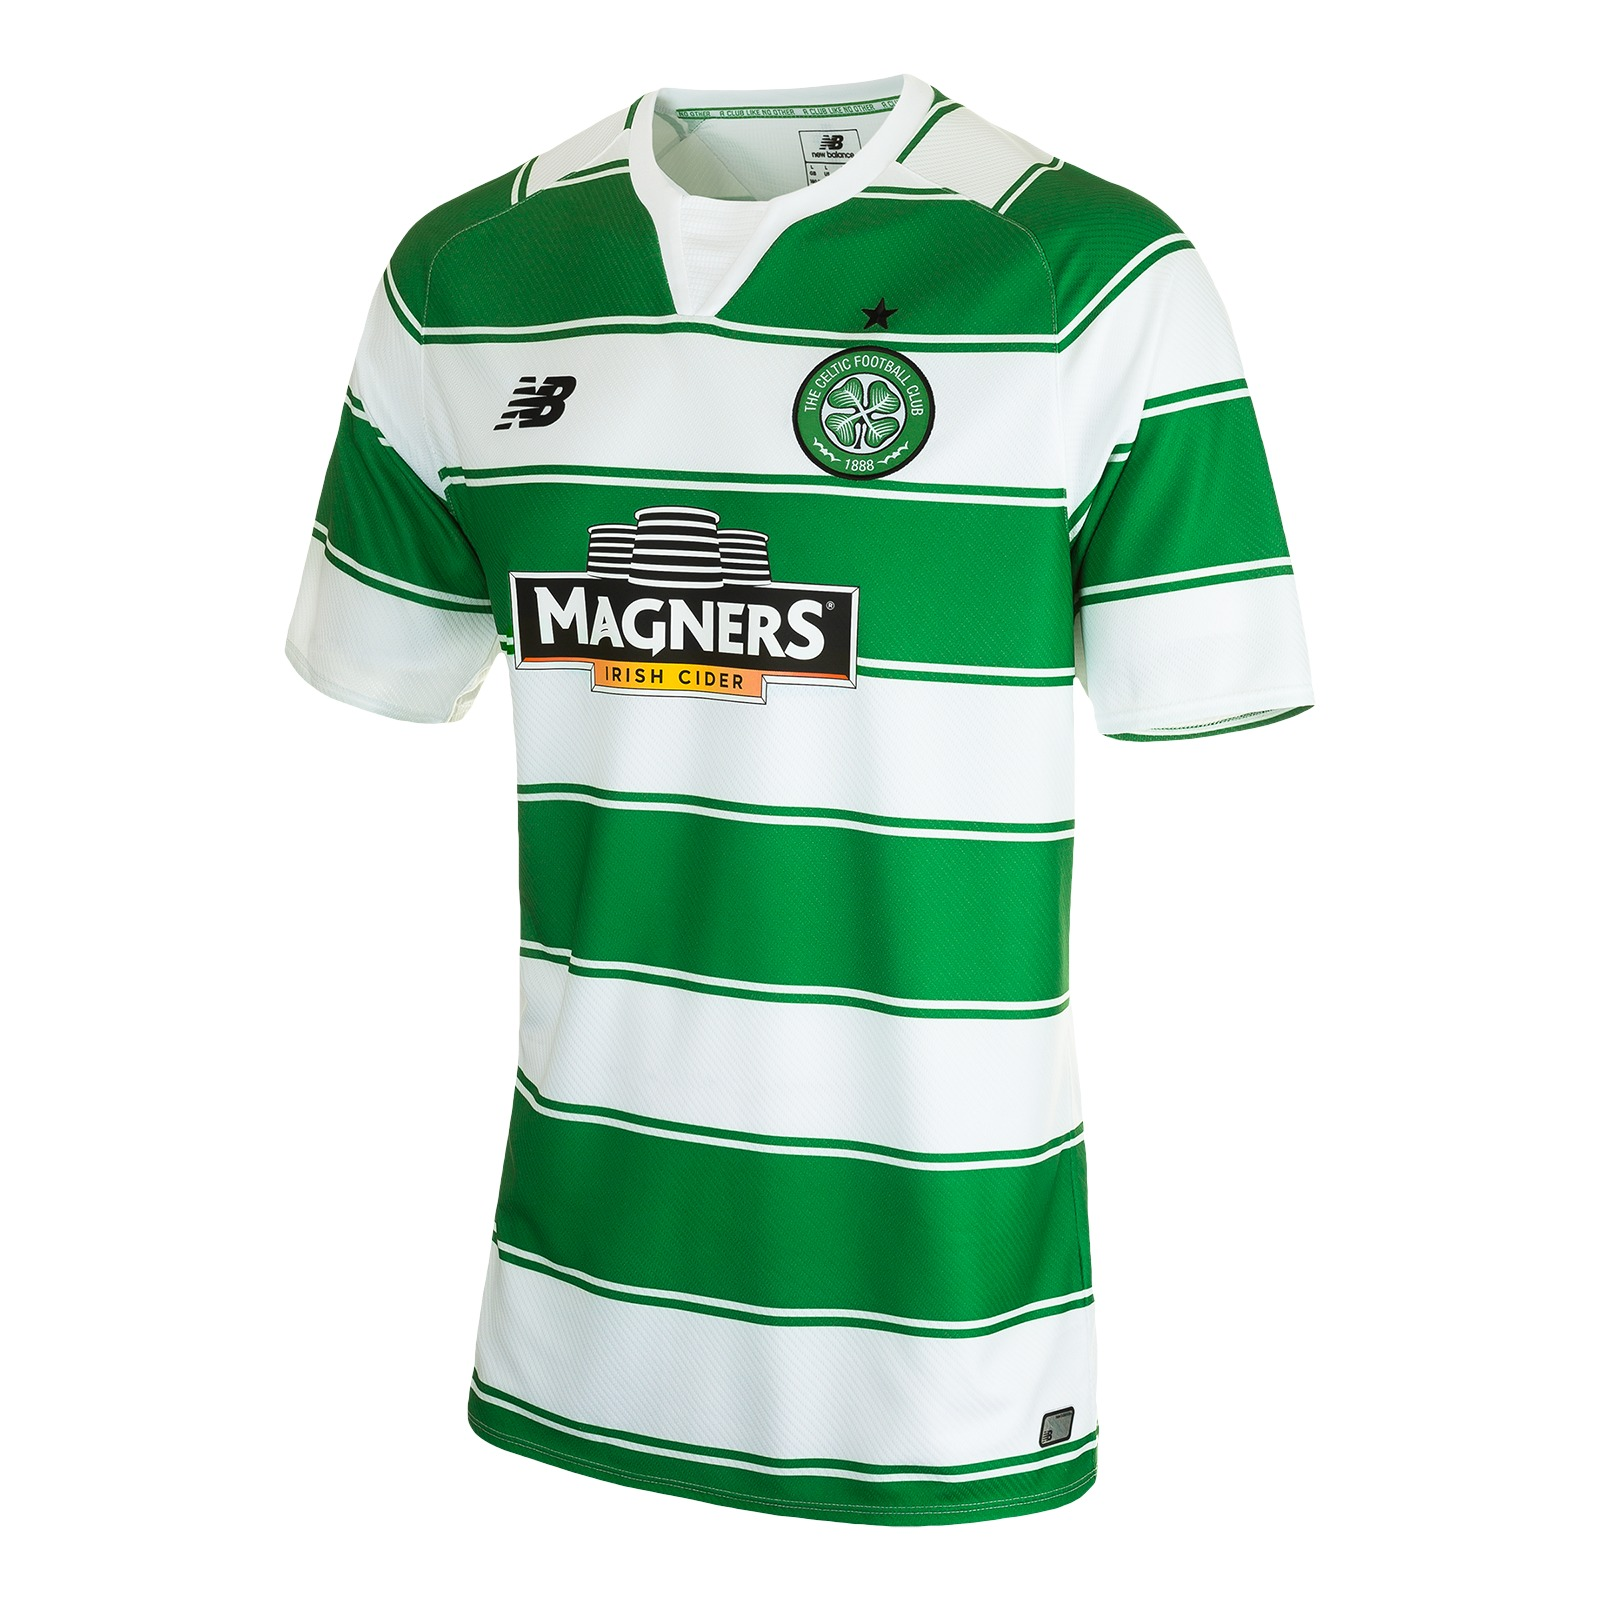 83bdaf2f4 As one would expect New Balance kept with tradition in creating a kit with  green and white hoops. The result is a classy looking offering which any  Celtic ...